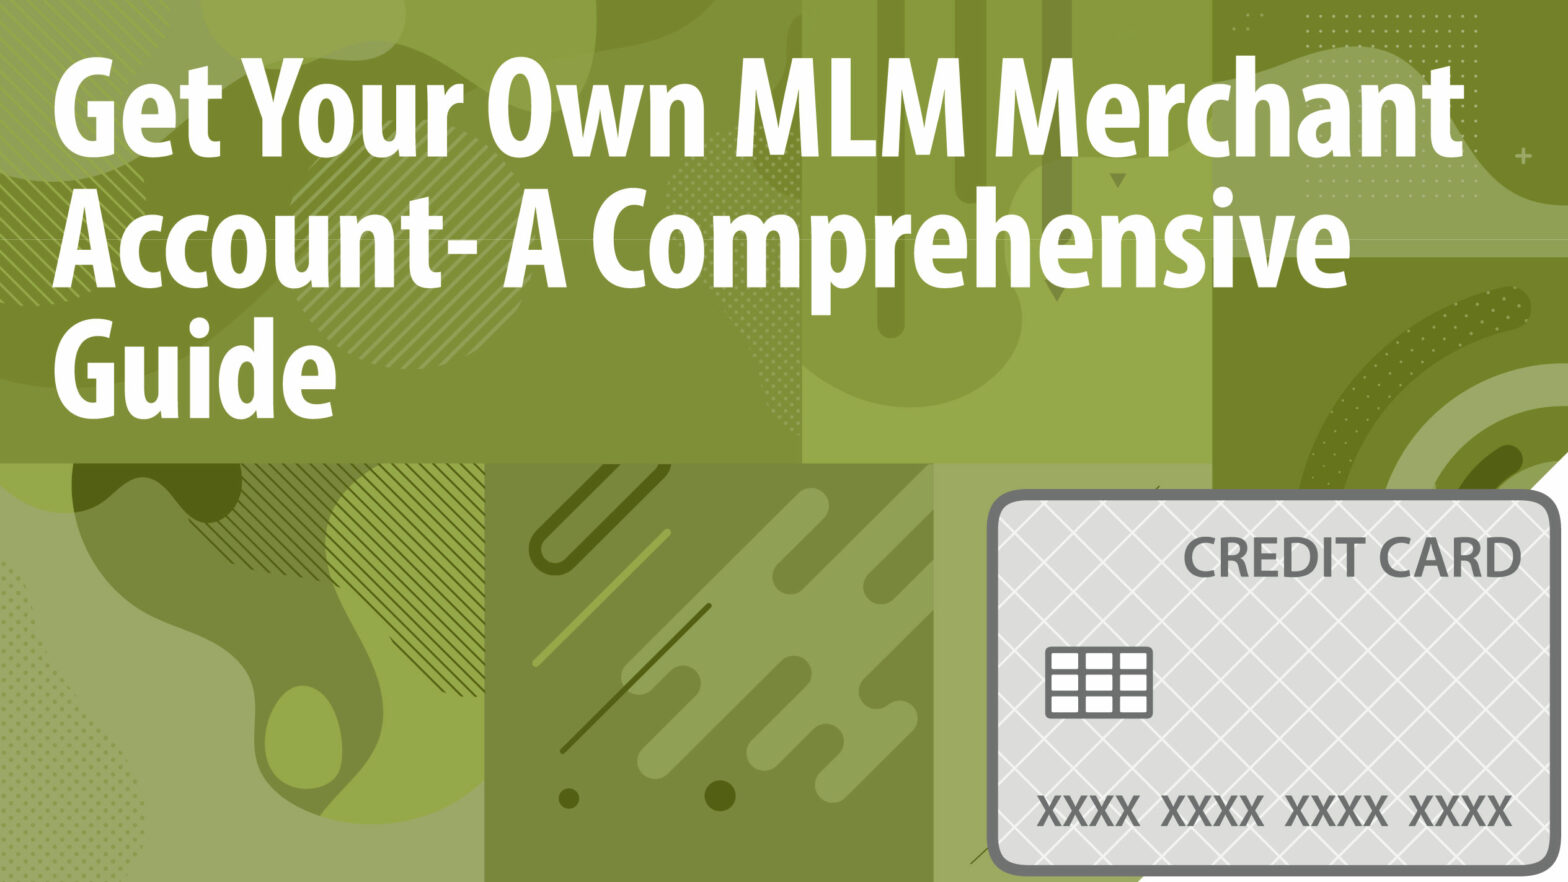 MLM Merchant Account Article Header